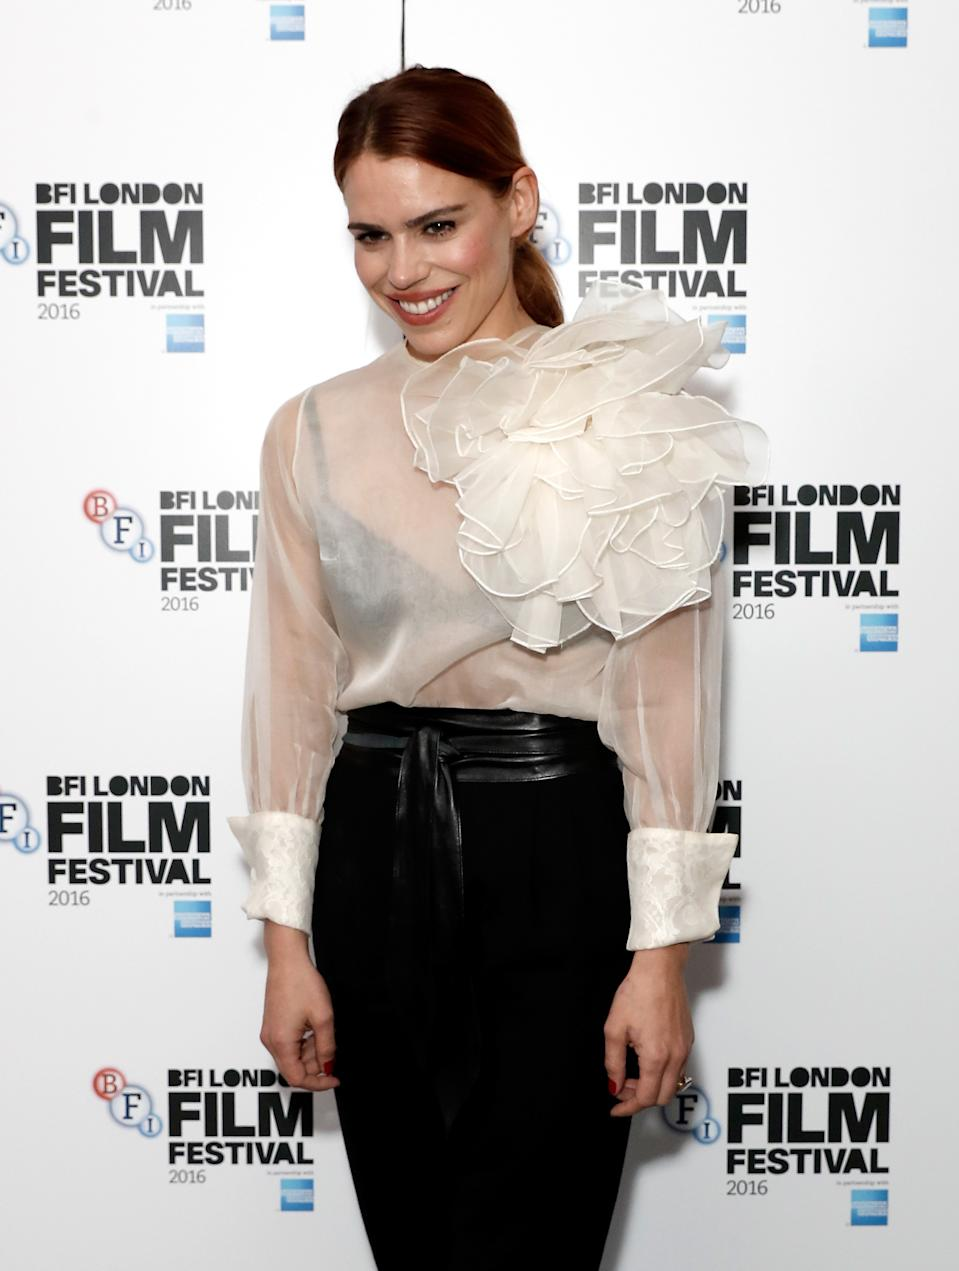 LONDON, ENGLAND - OCTOBER 13: Actress Billie Piper attends the 'City Of Tiny Lights' screening in association with Mobo Films during the 60th BFI London Film Festival at Picturehouse Central on October 13, 2016 in London, England. (Photo by John Phillips/Getty Images for BFI)